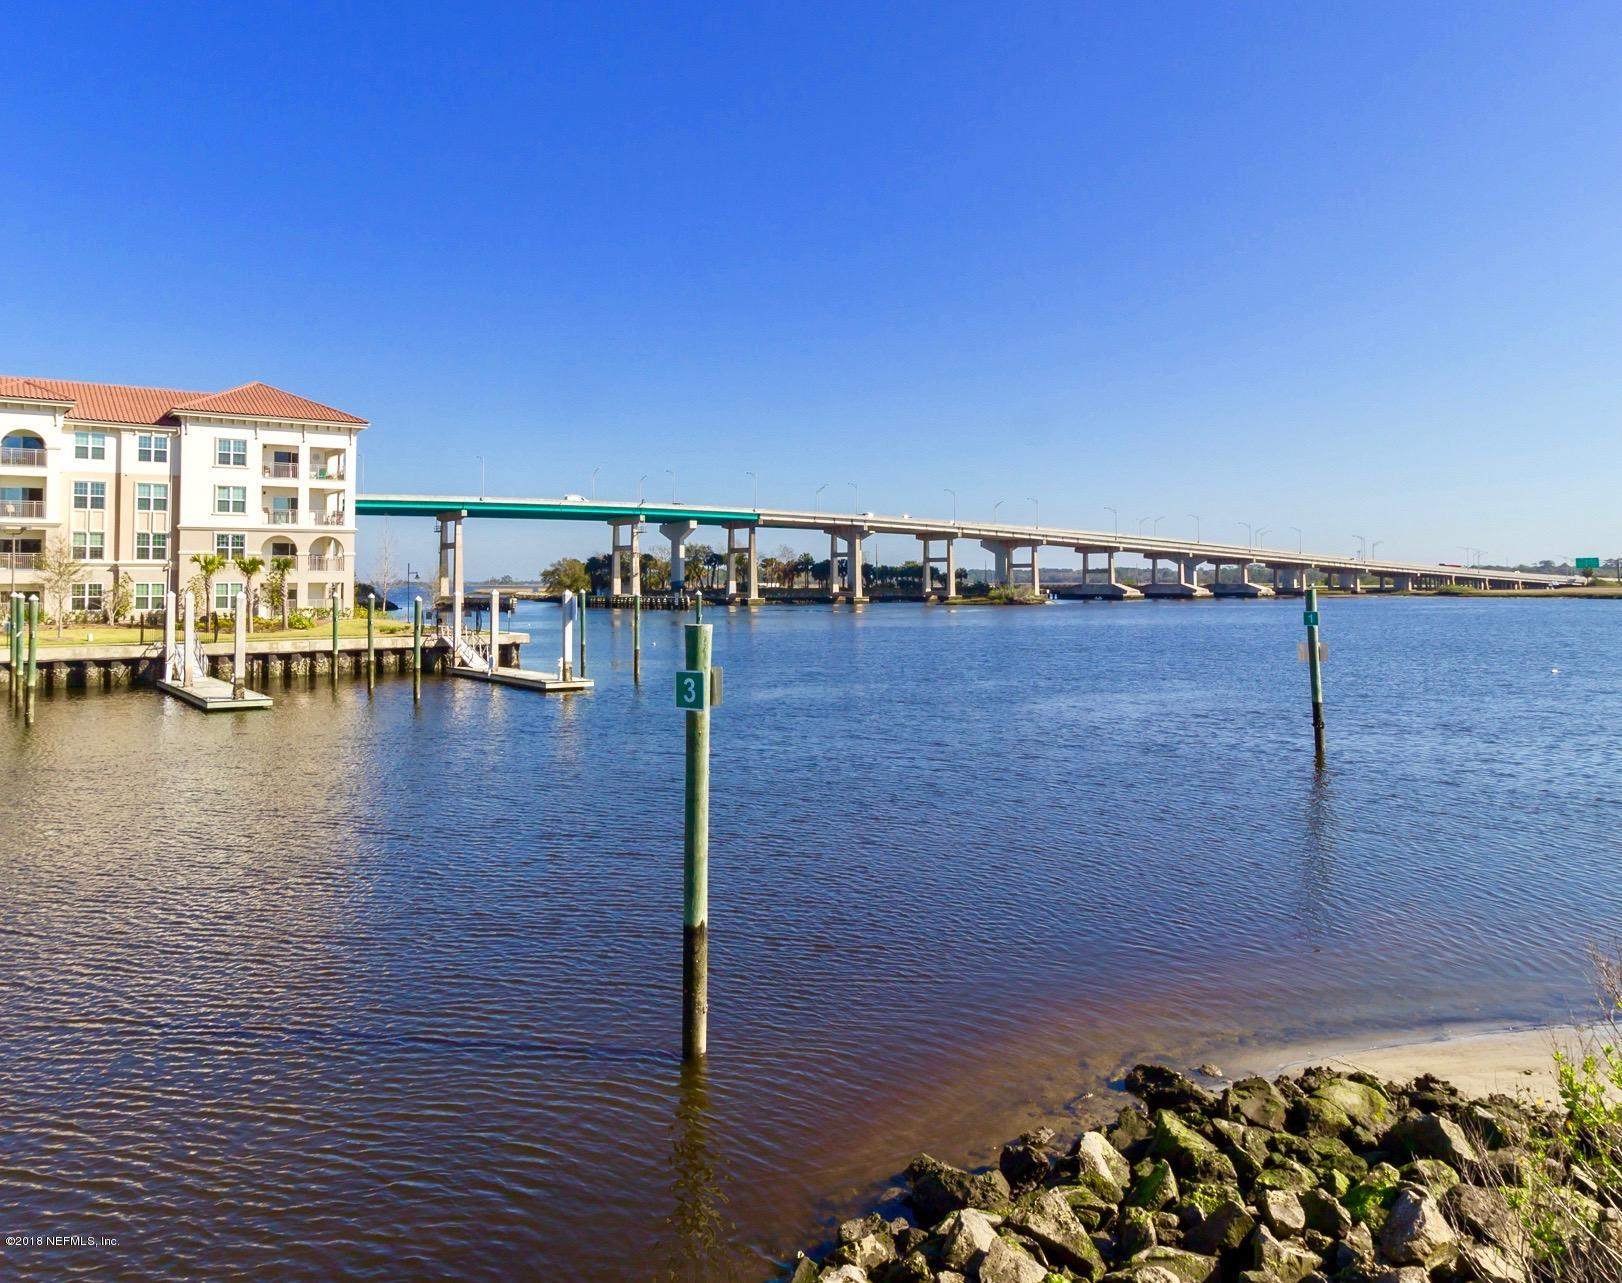 0 ATLANTIC, JACKSONVILLE, FLORIDA 32224, ,Residential - condos/townhomes,For sale,ATLANTIC,952334